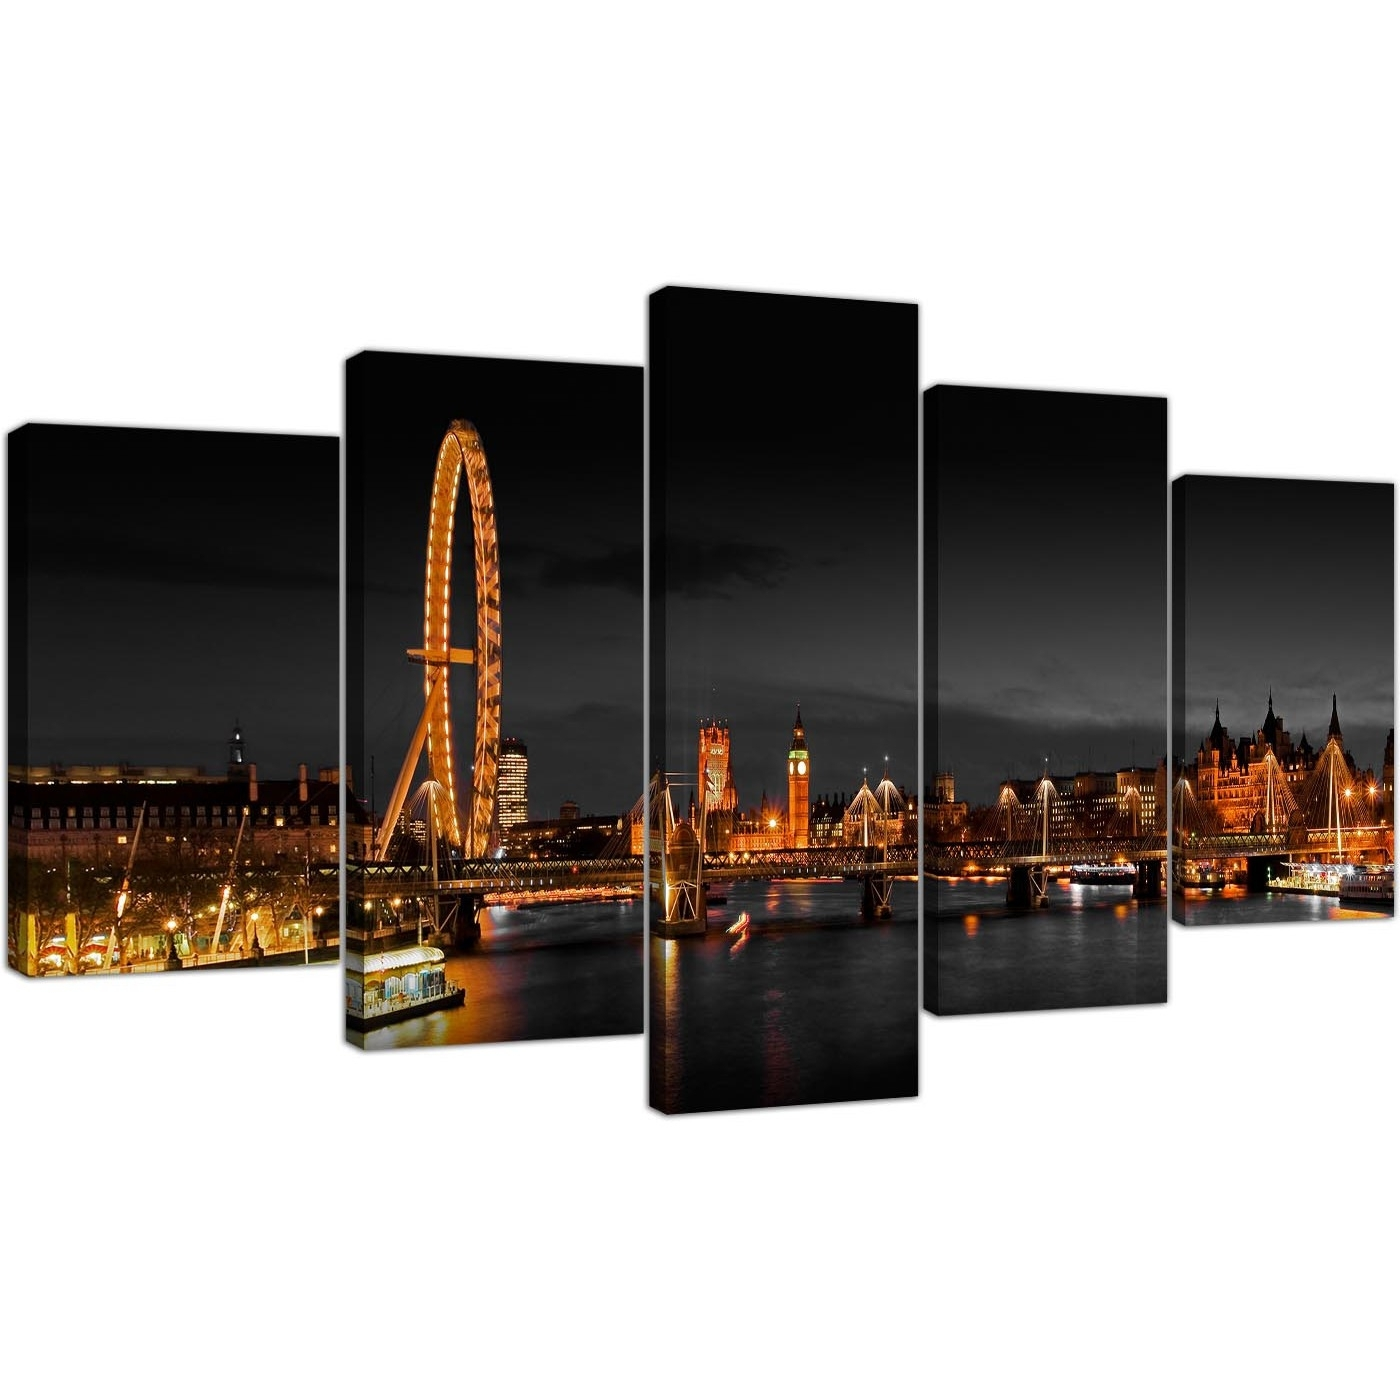 London Eye Canvas Prints Uk Night For Your Living Room – Set Of Five In Best And Newest London Canvas Wall Art (View 9 of 15)